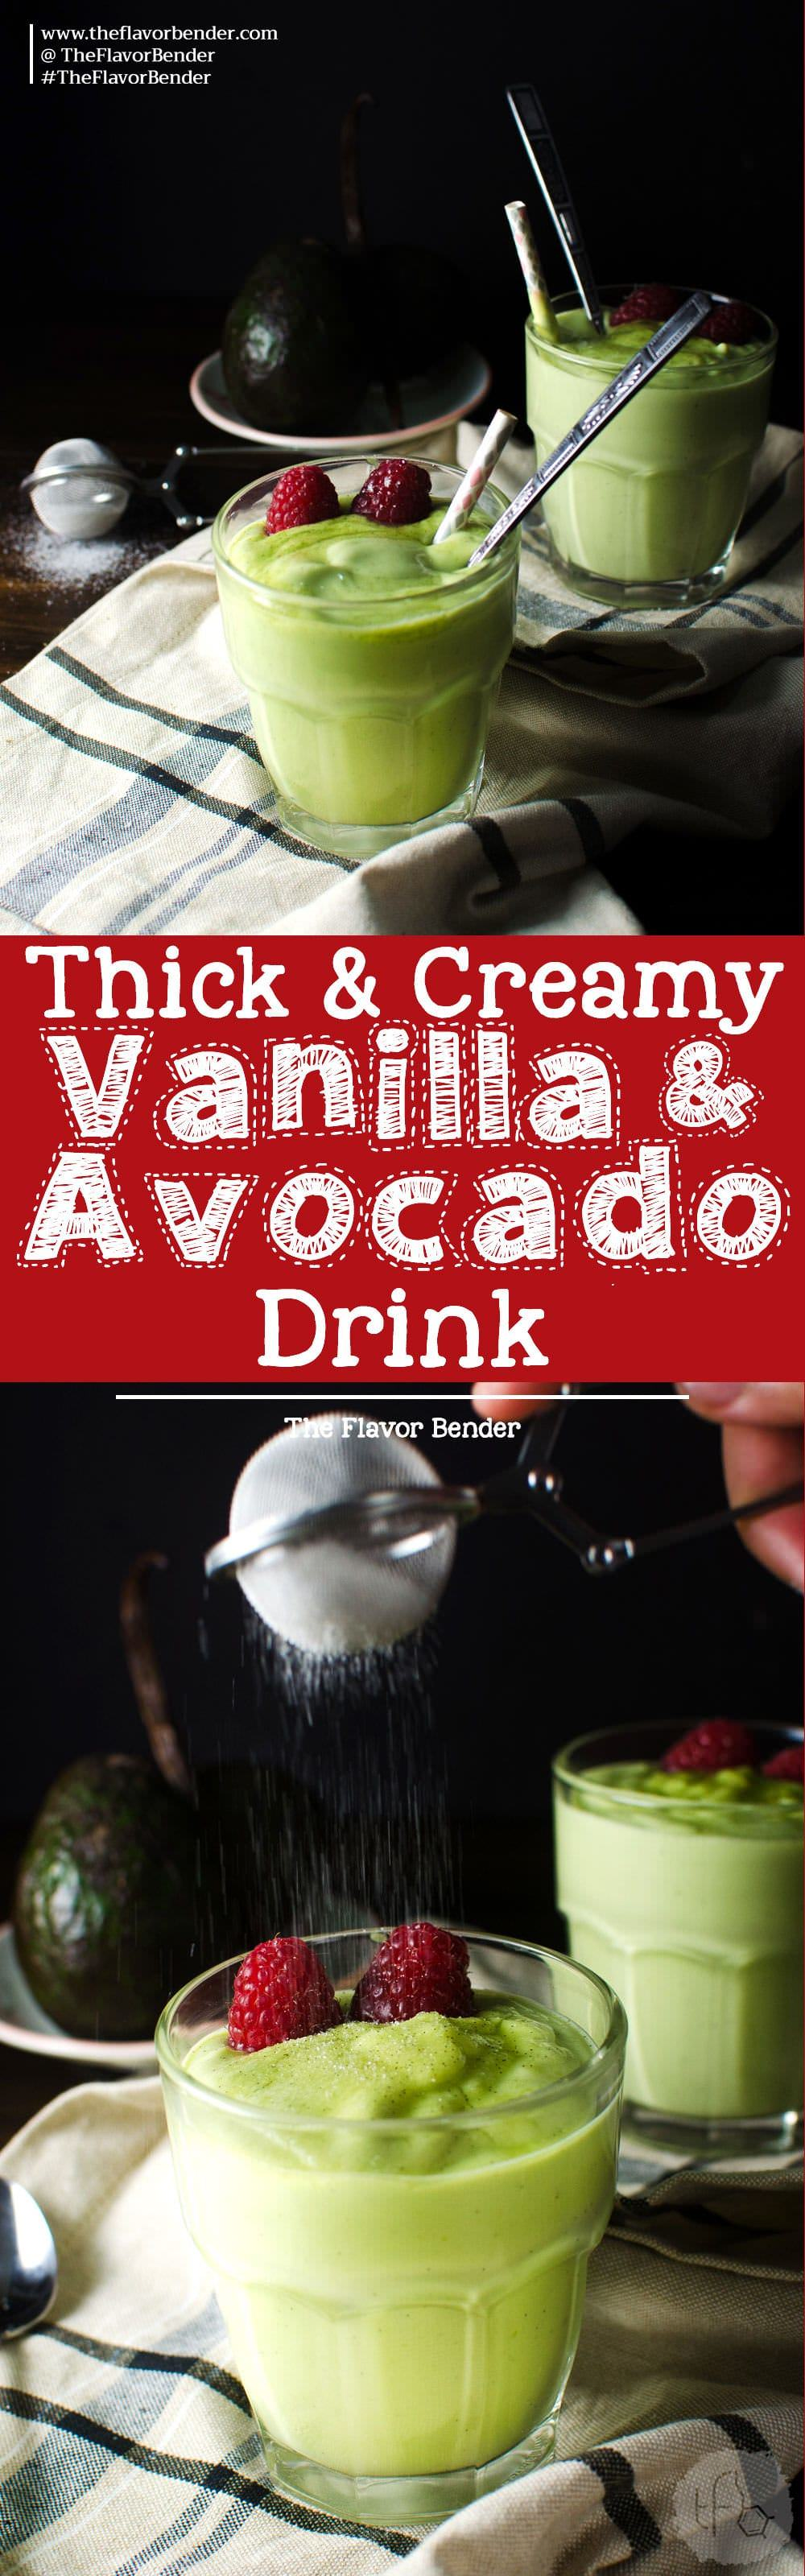 Creamy Vanilla Avocado Drink - This simple avocado based drink is a wonderful alternative as a dessert, a drink or creamy and thick milk shake! It's great to be served all year round and is a great kid friendly recipe!  Avocado Recipes | Milk Shakes | Thick Shakes | Desserts | Drinks |